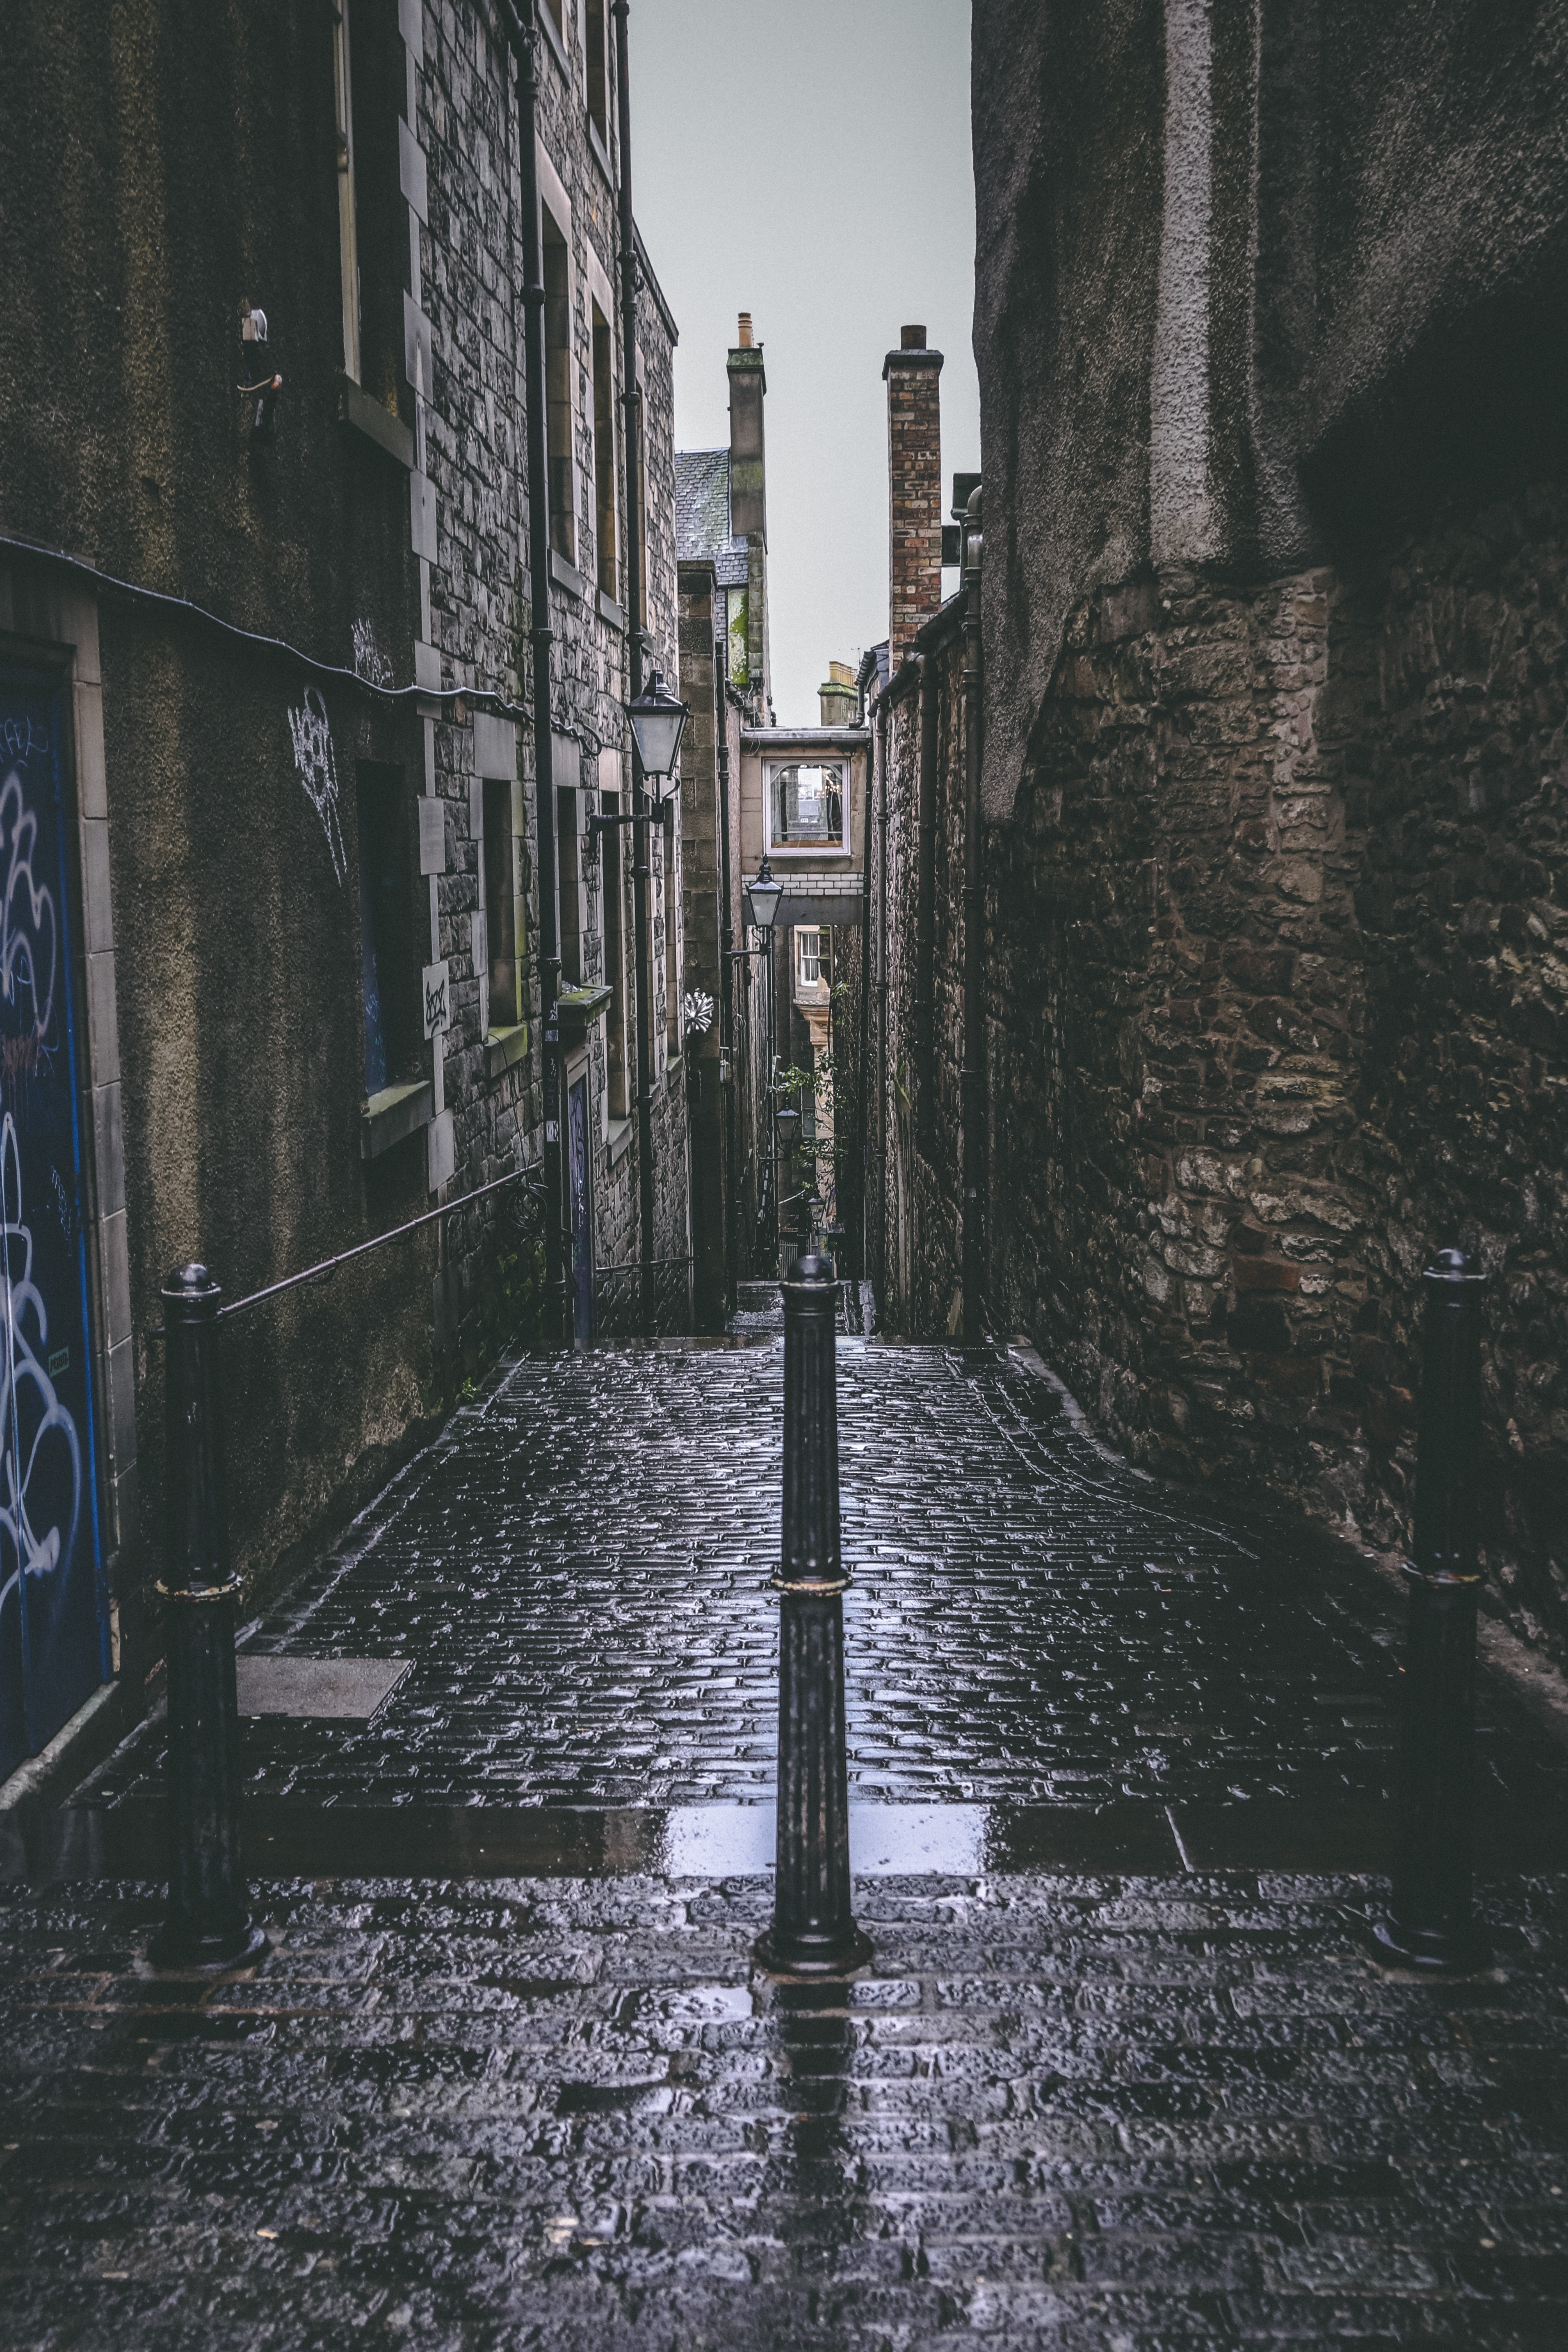 empty pathway surrounded by buildings